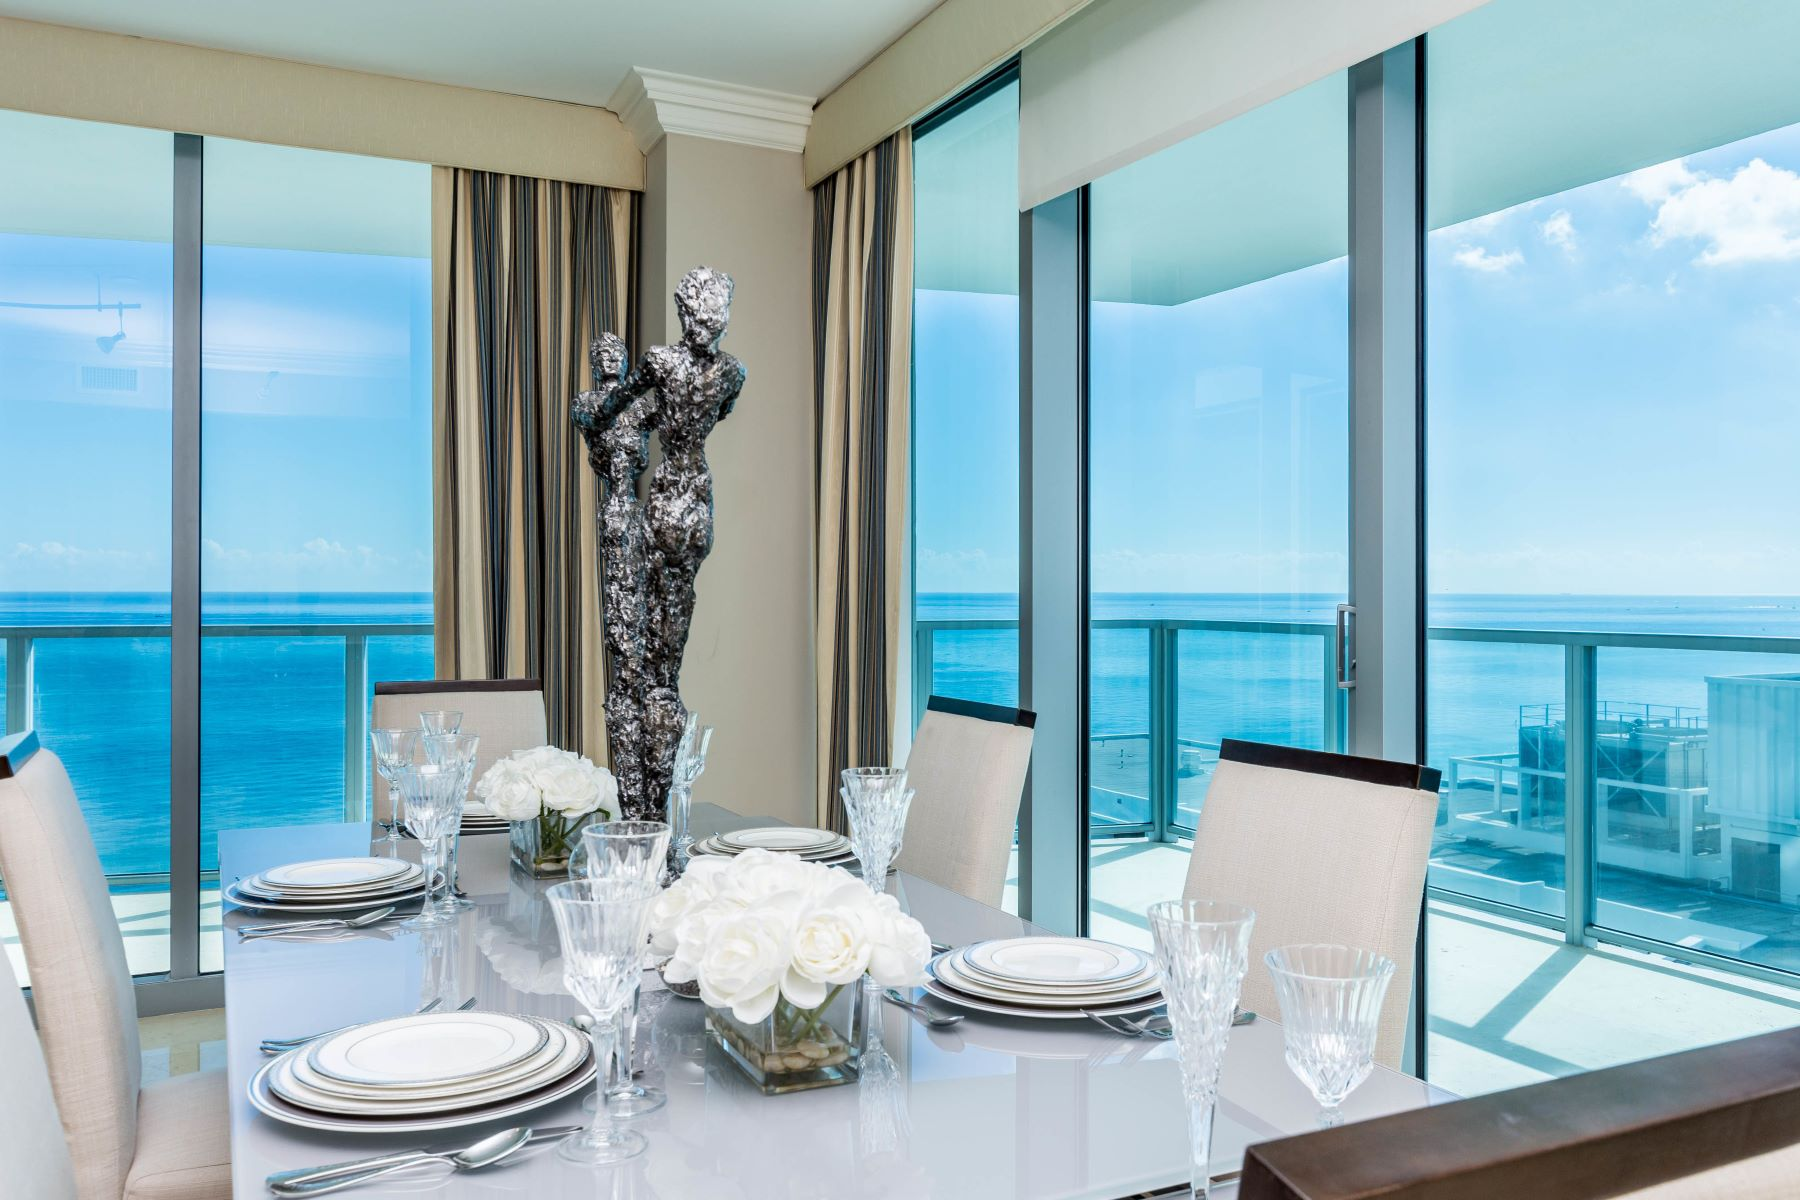 Apartment for Sale at 3101 S Ocean Dr #1902 3101 S Ocean Dr 1902 Hollywood, Florida 33019 United States